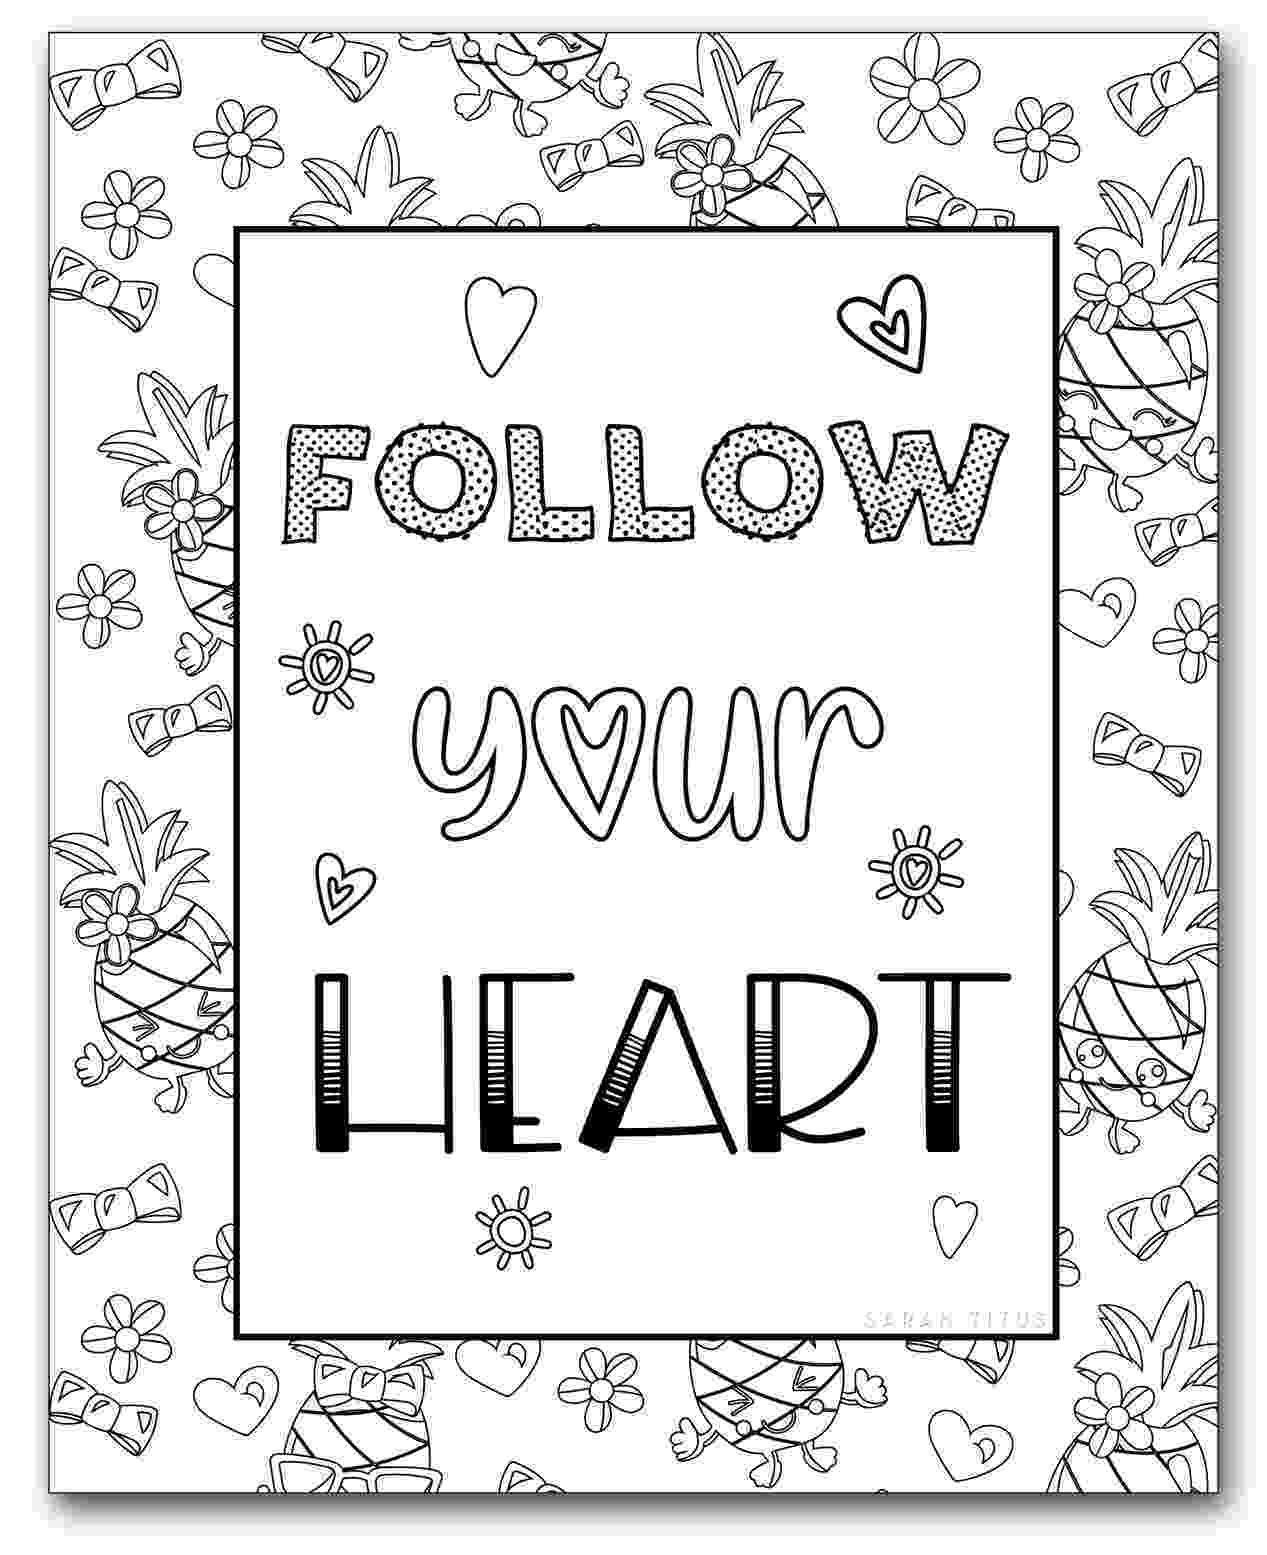 coloring pages for girls printable coloring pages little girl dibujos en tela dibujos pages coloring printable for girls